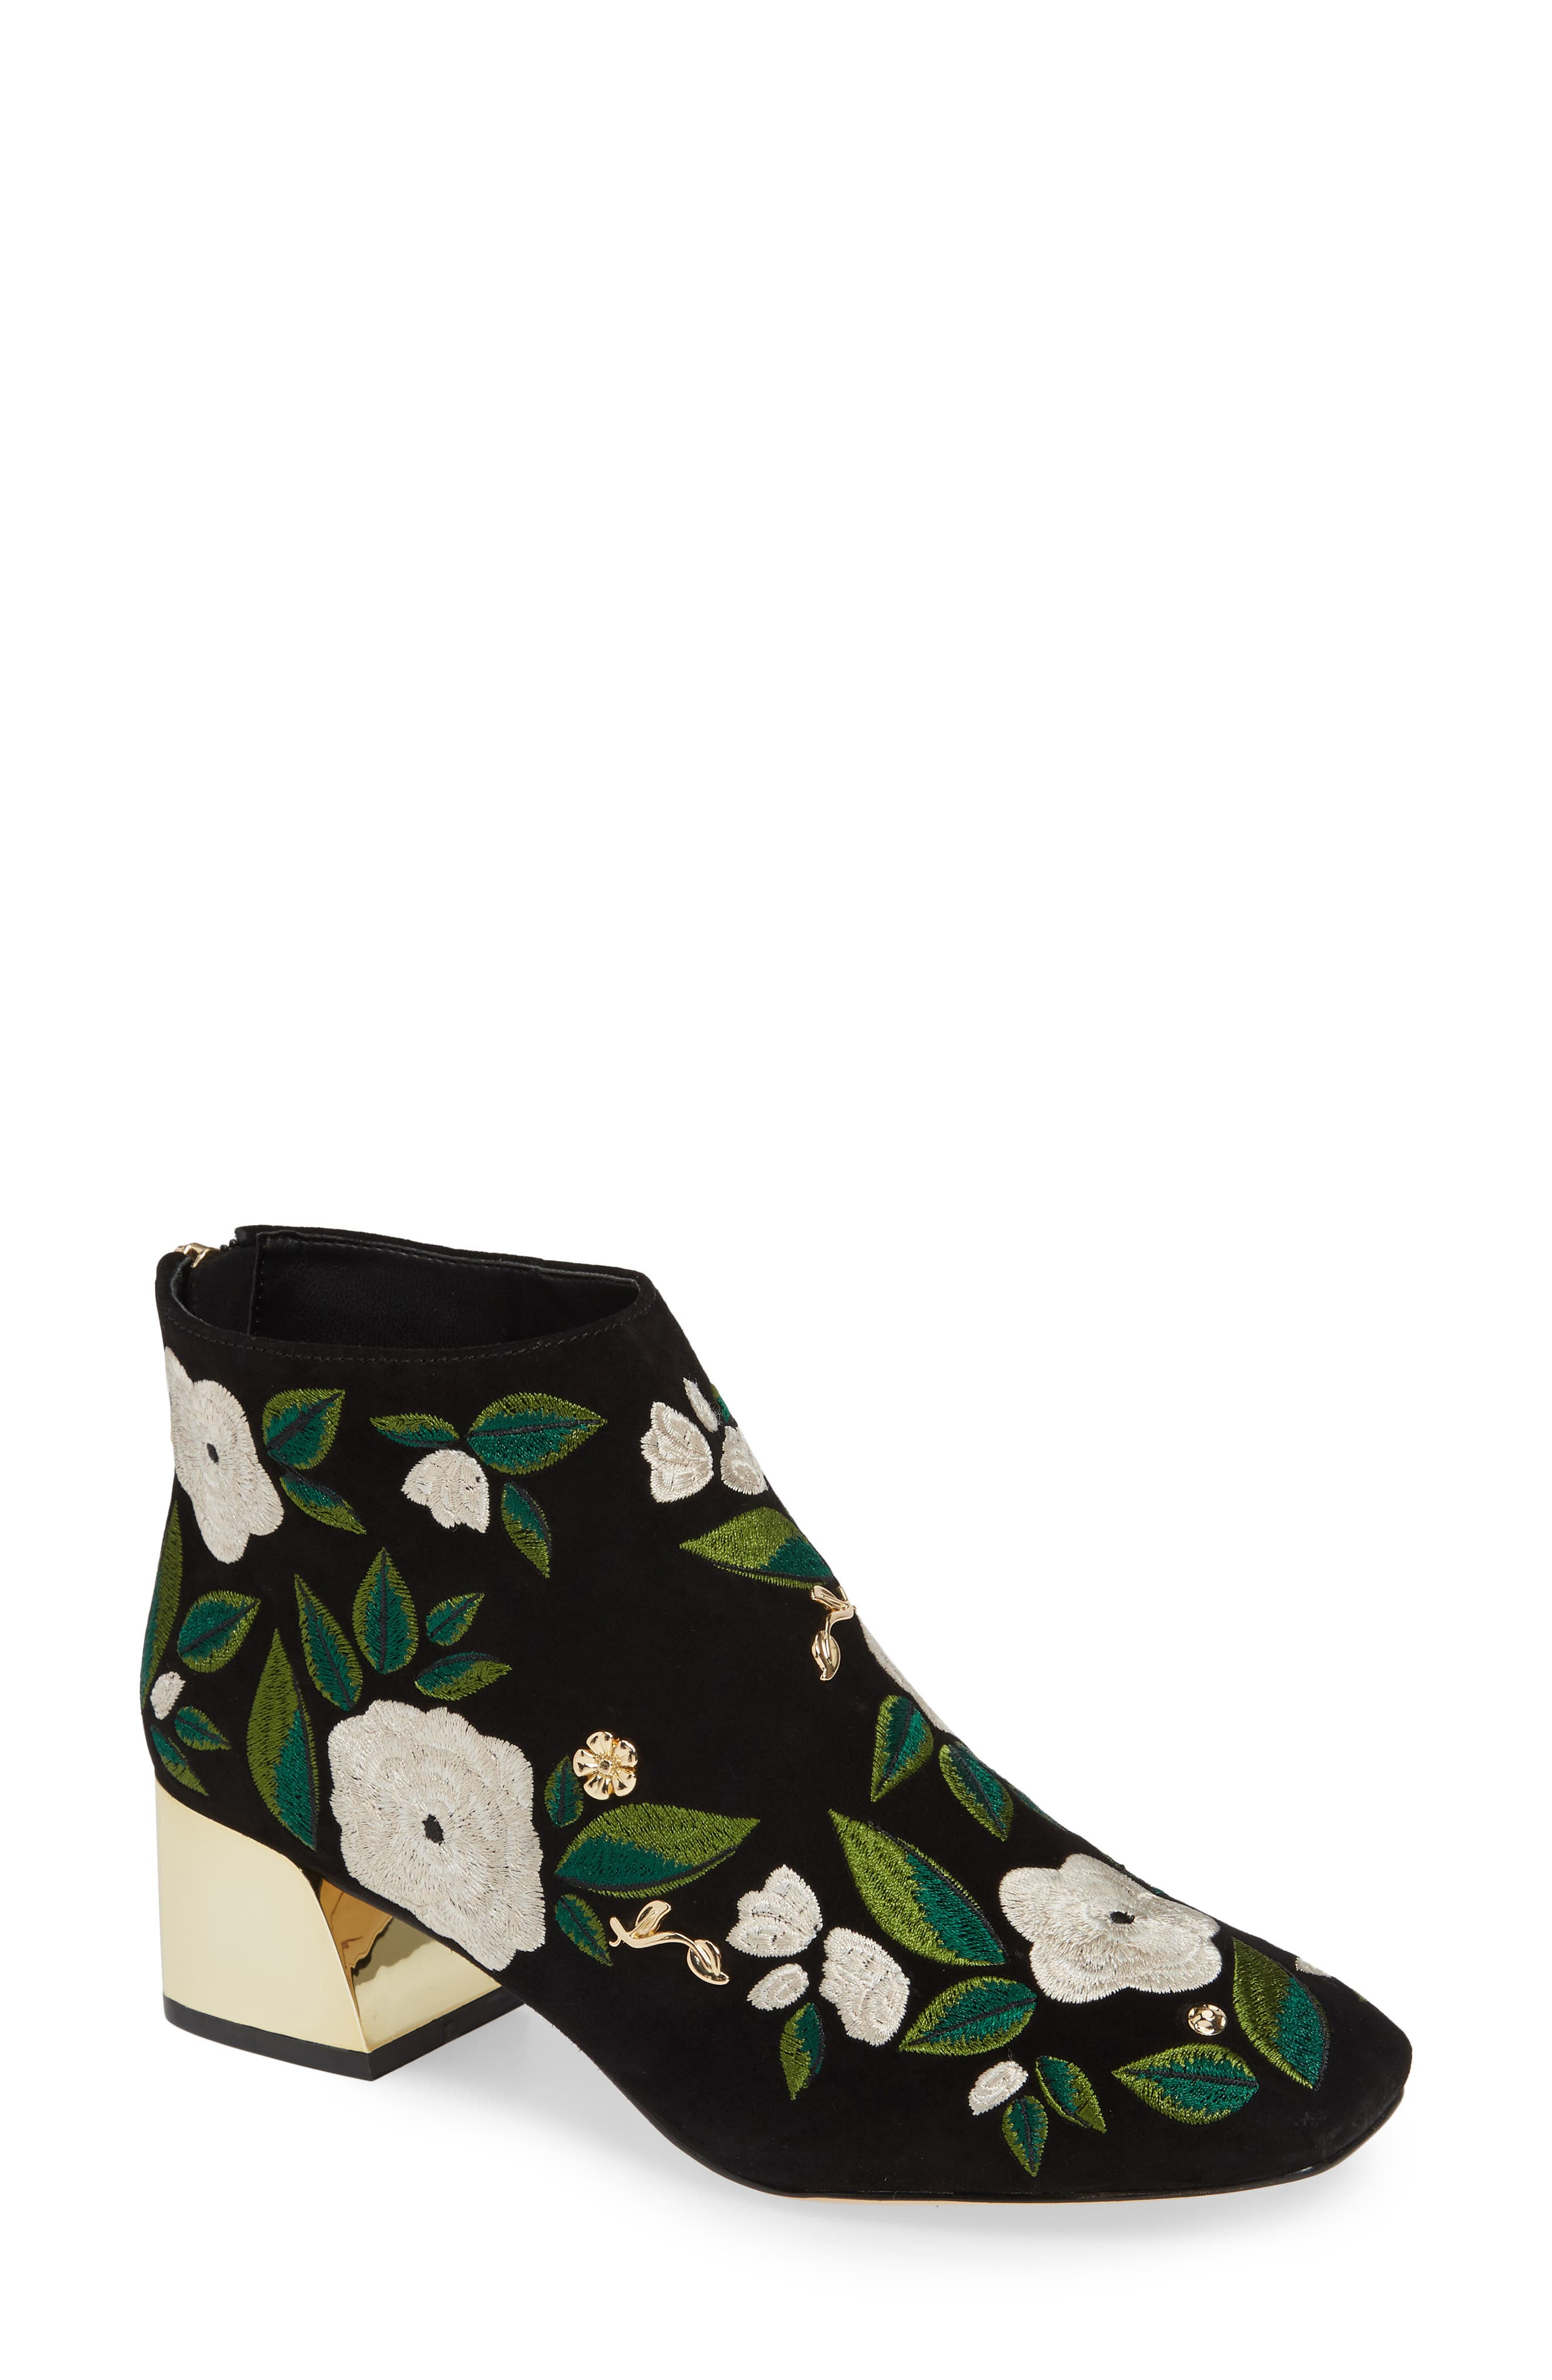 KARL LAGERFELD PARIS Harlow Bootie, Main, color, 002